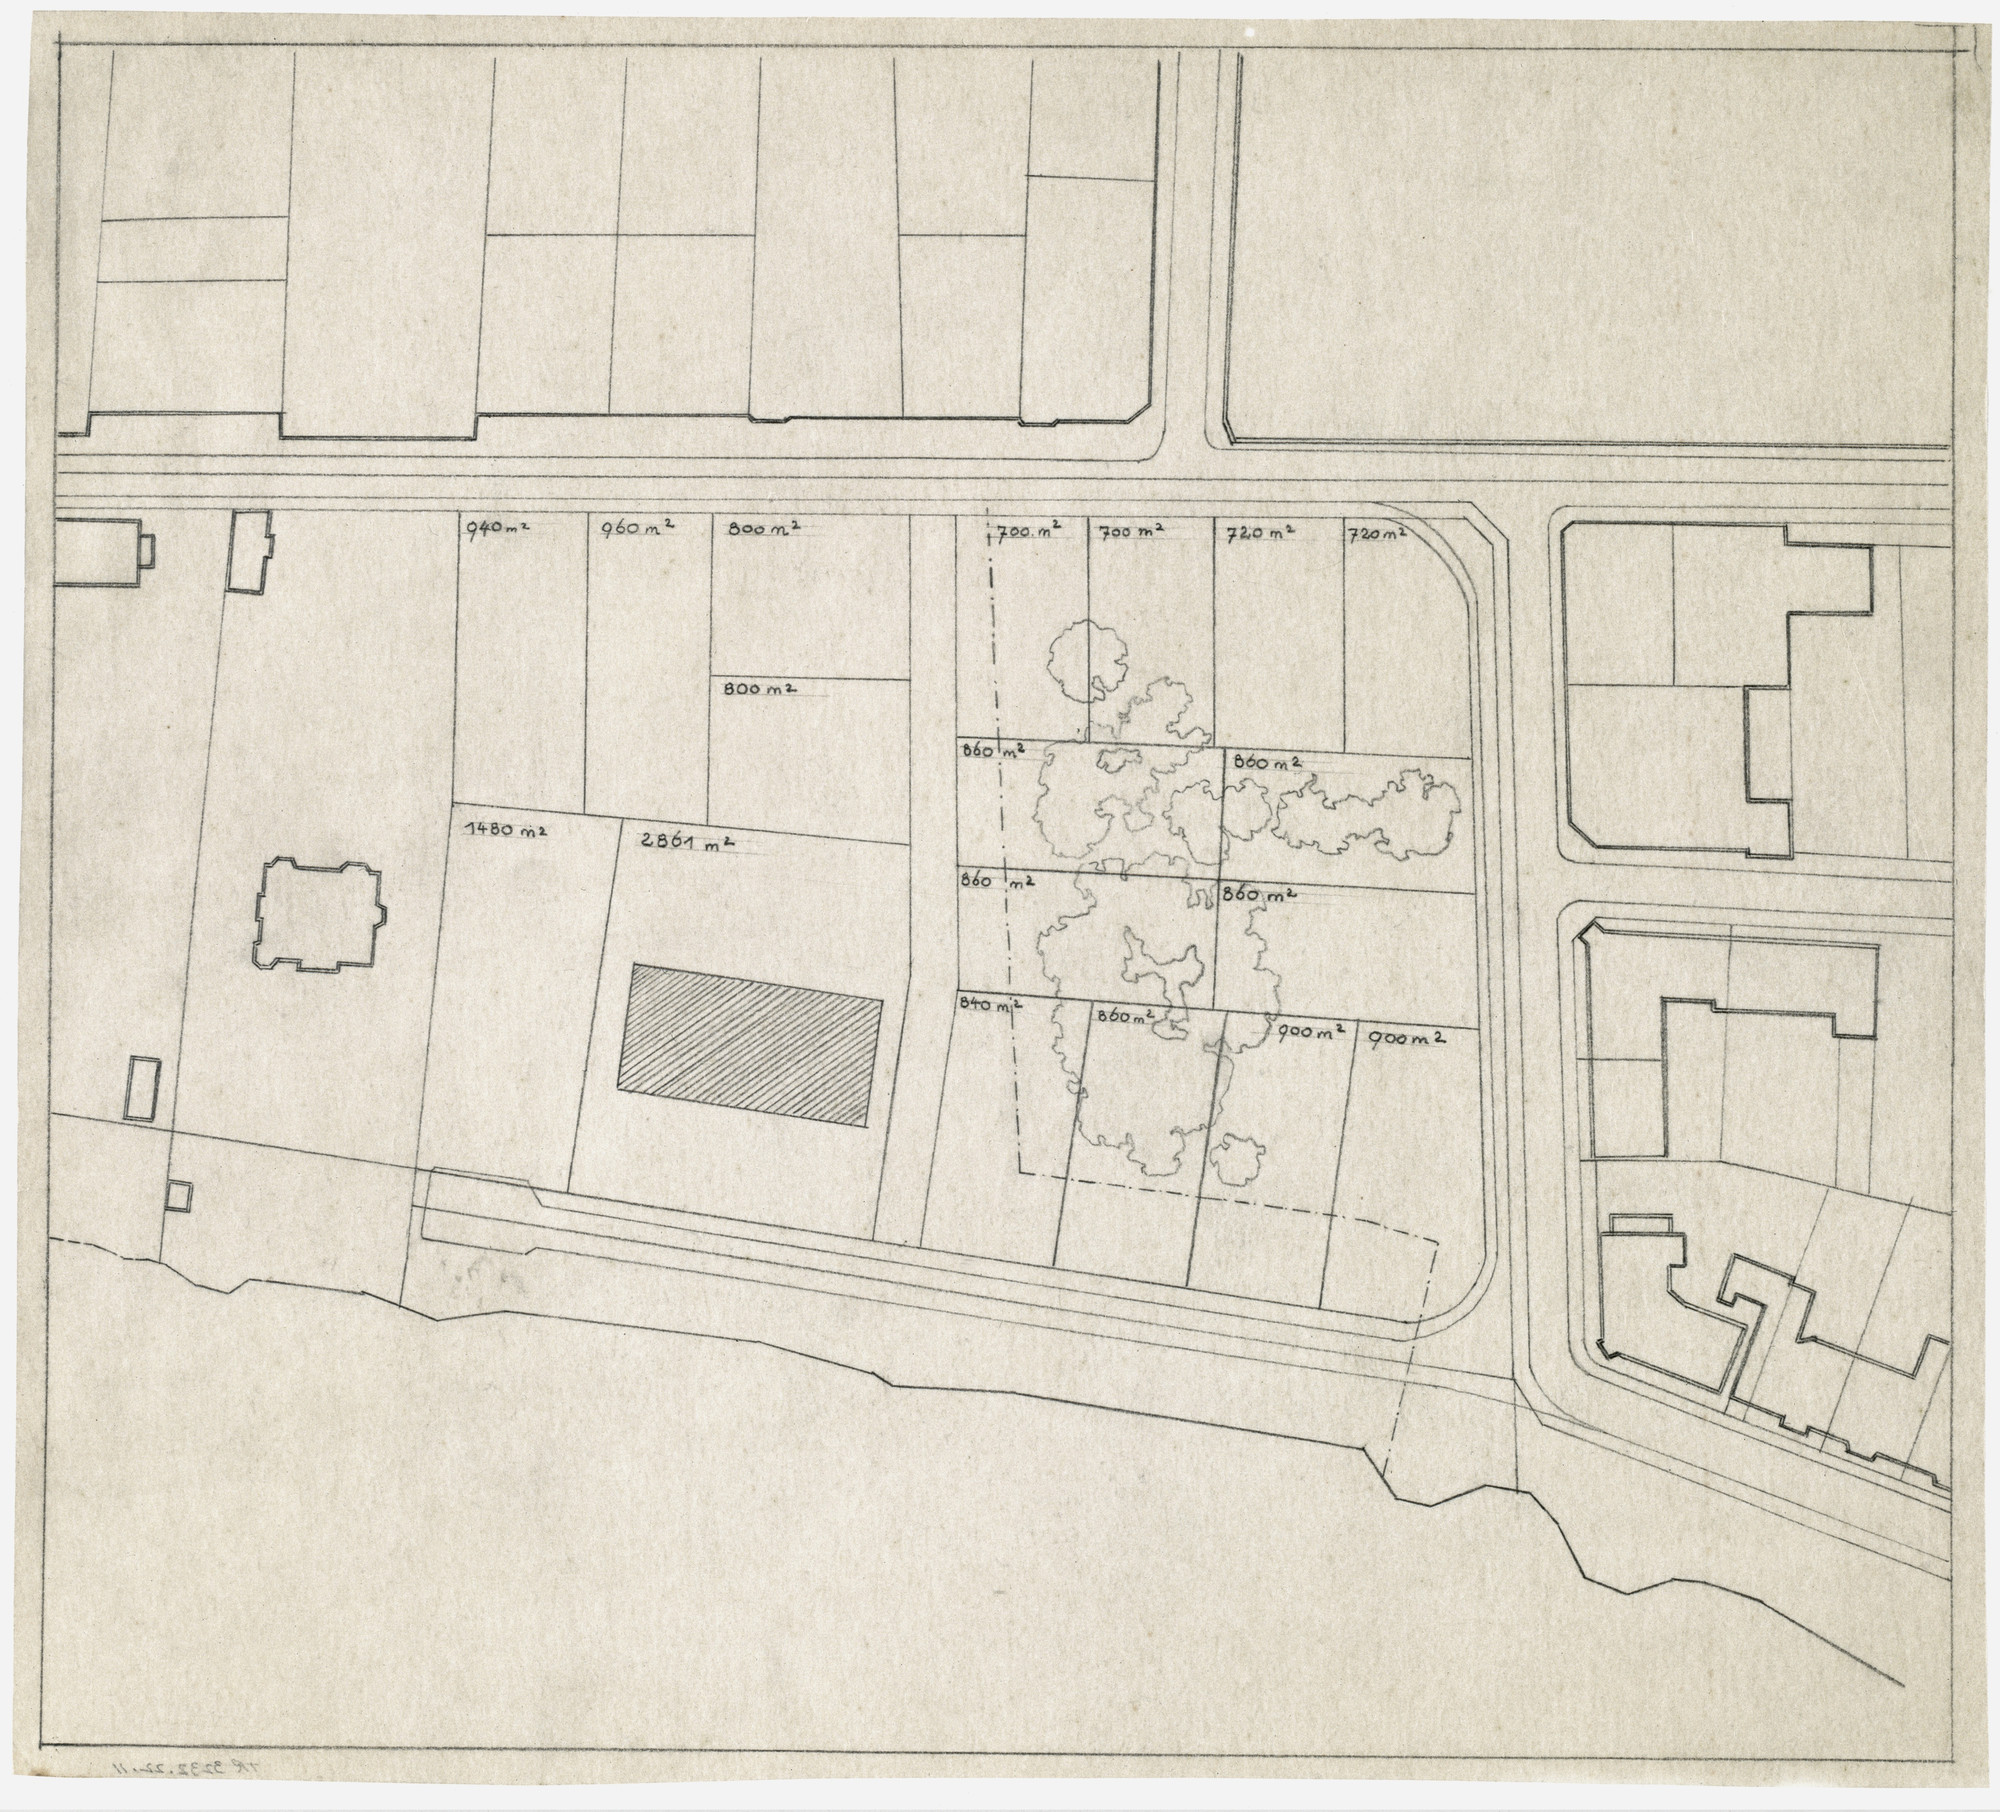 Ludwig Mies van der Rohe. Hubbe House Project, Magdeburg, Germany (Site plan). 1934-1935